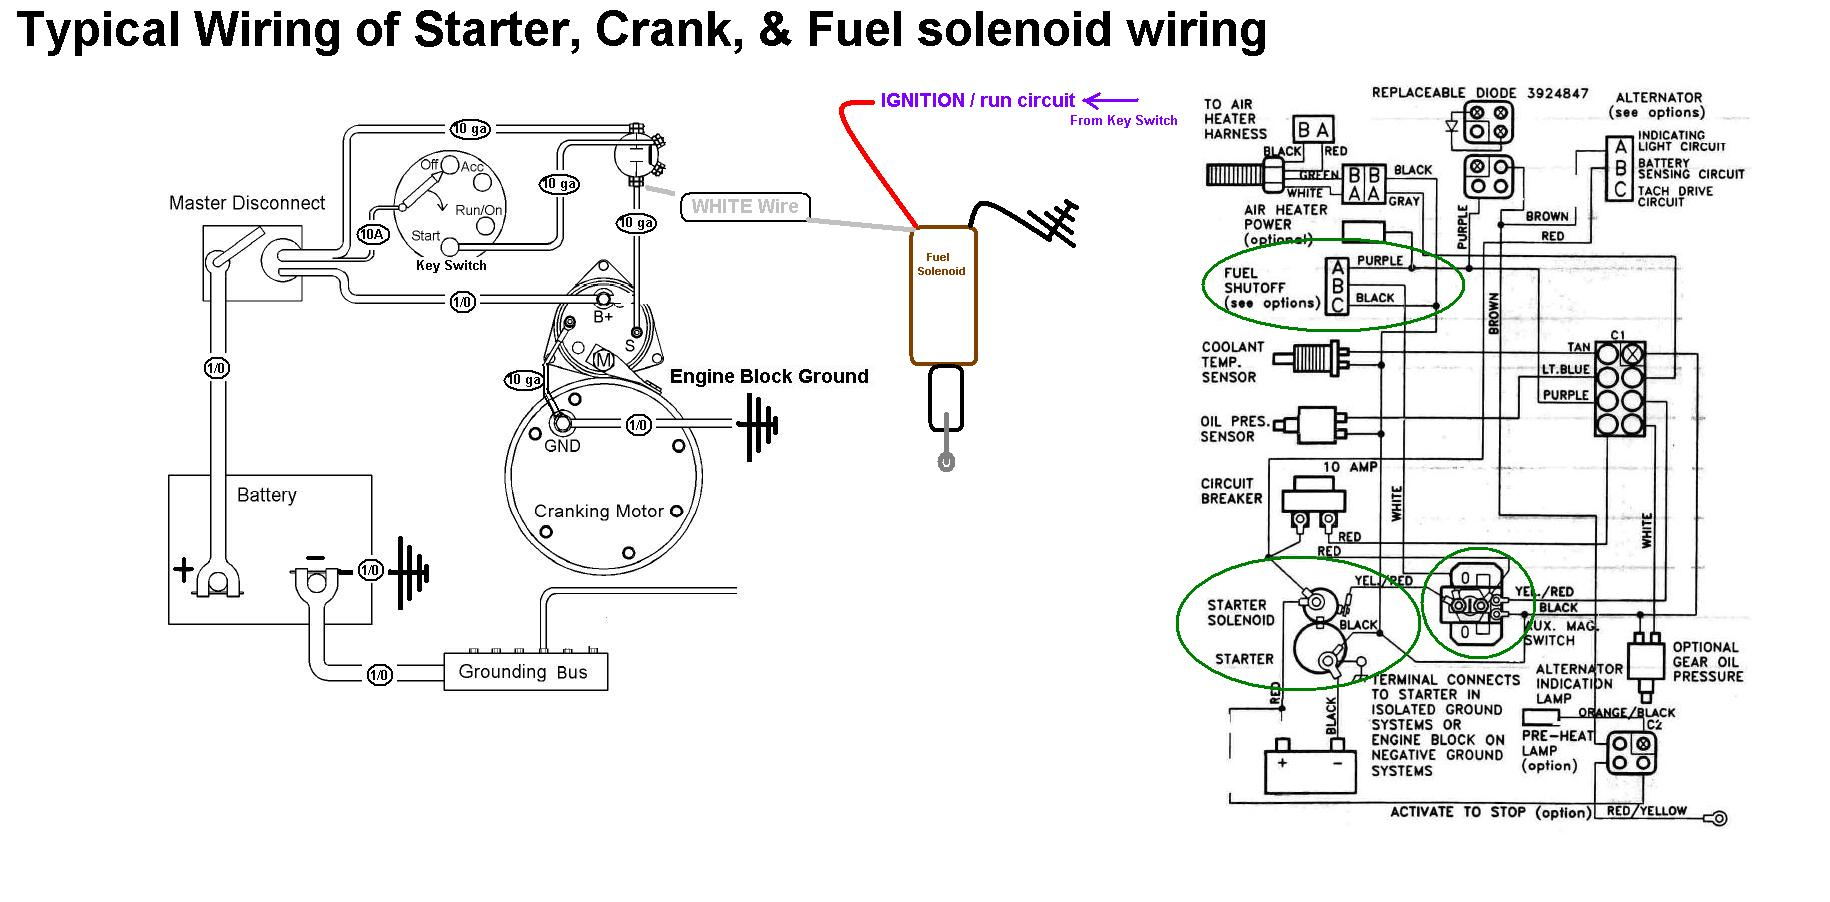 1968 Ford Alternator Wiring Diagram Free Picture Simple Guide Images Gallery Starter Crank Fuel Shutoff Solenoid Seaboard